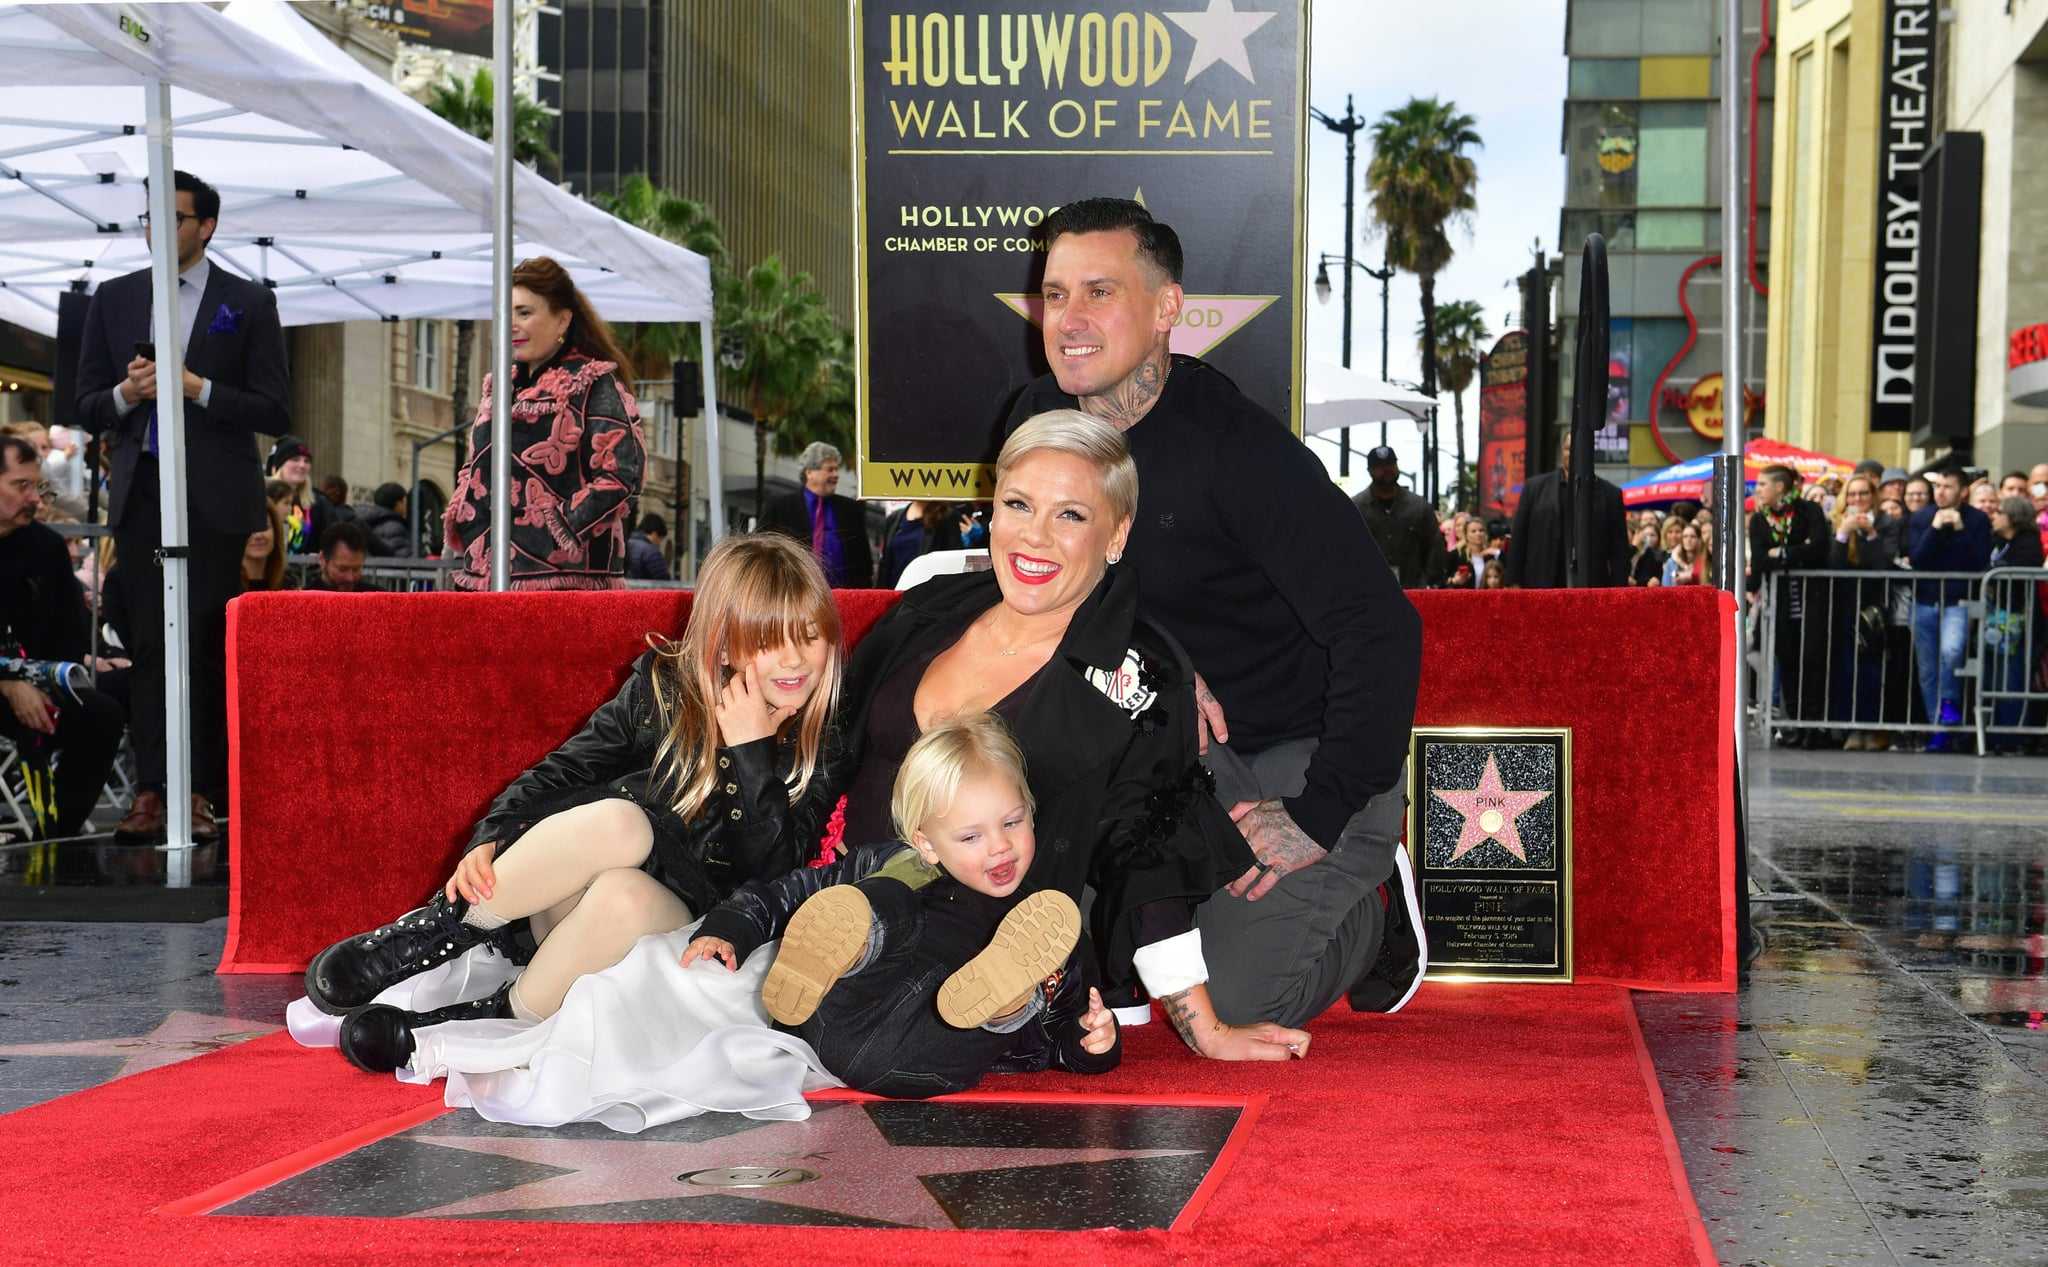 Recording artist Pink poses with her husband Carey and two children on her Hollywood Walk of Fame Star at a ceremony in Hollywood, California. (Photo by Frederic J. BROWN / AFP)        (Photo credit should read FREDERIC J. BROWN/AFP/Getty Images)